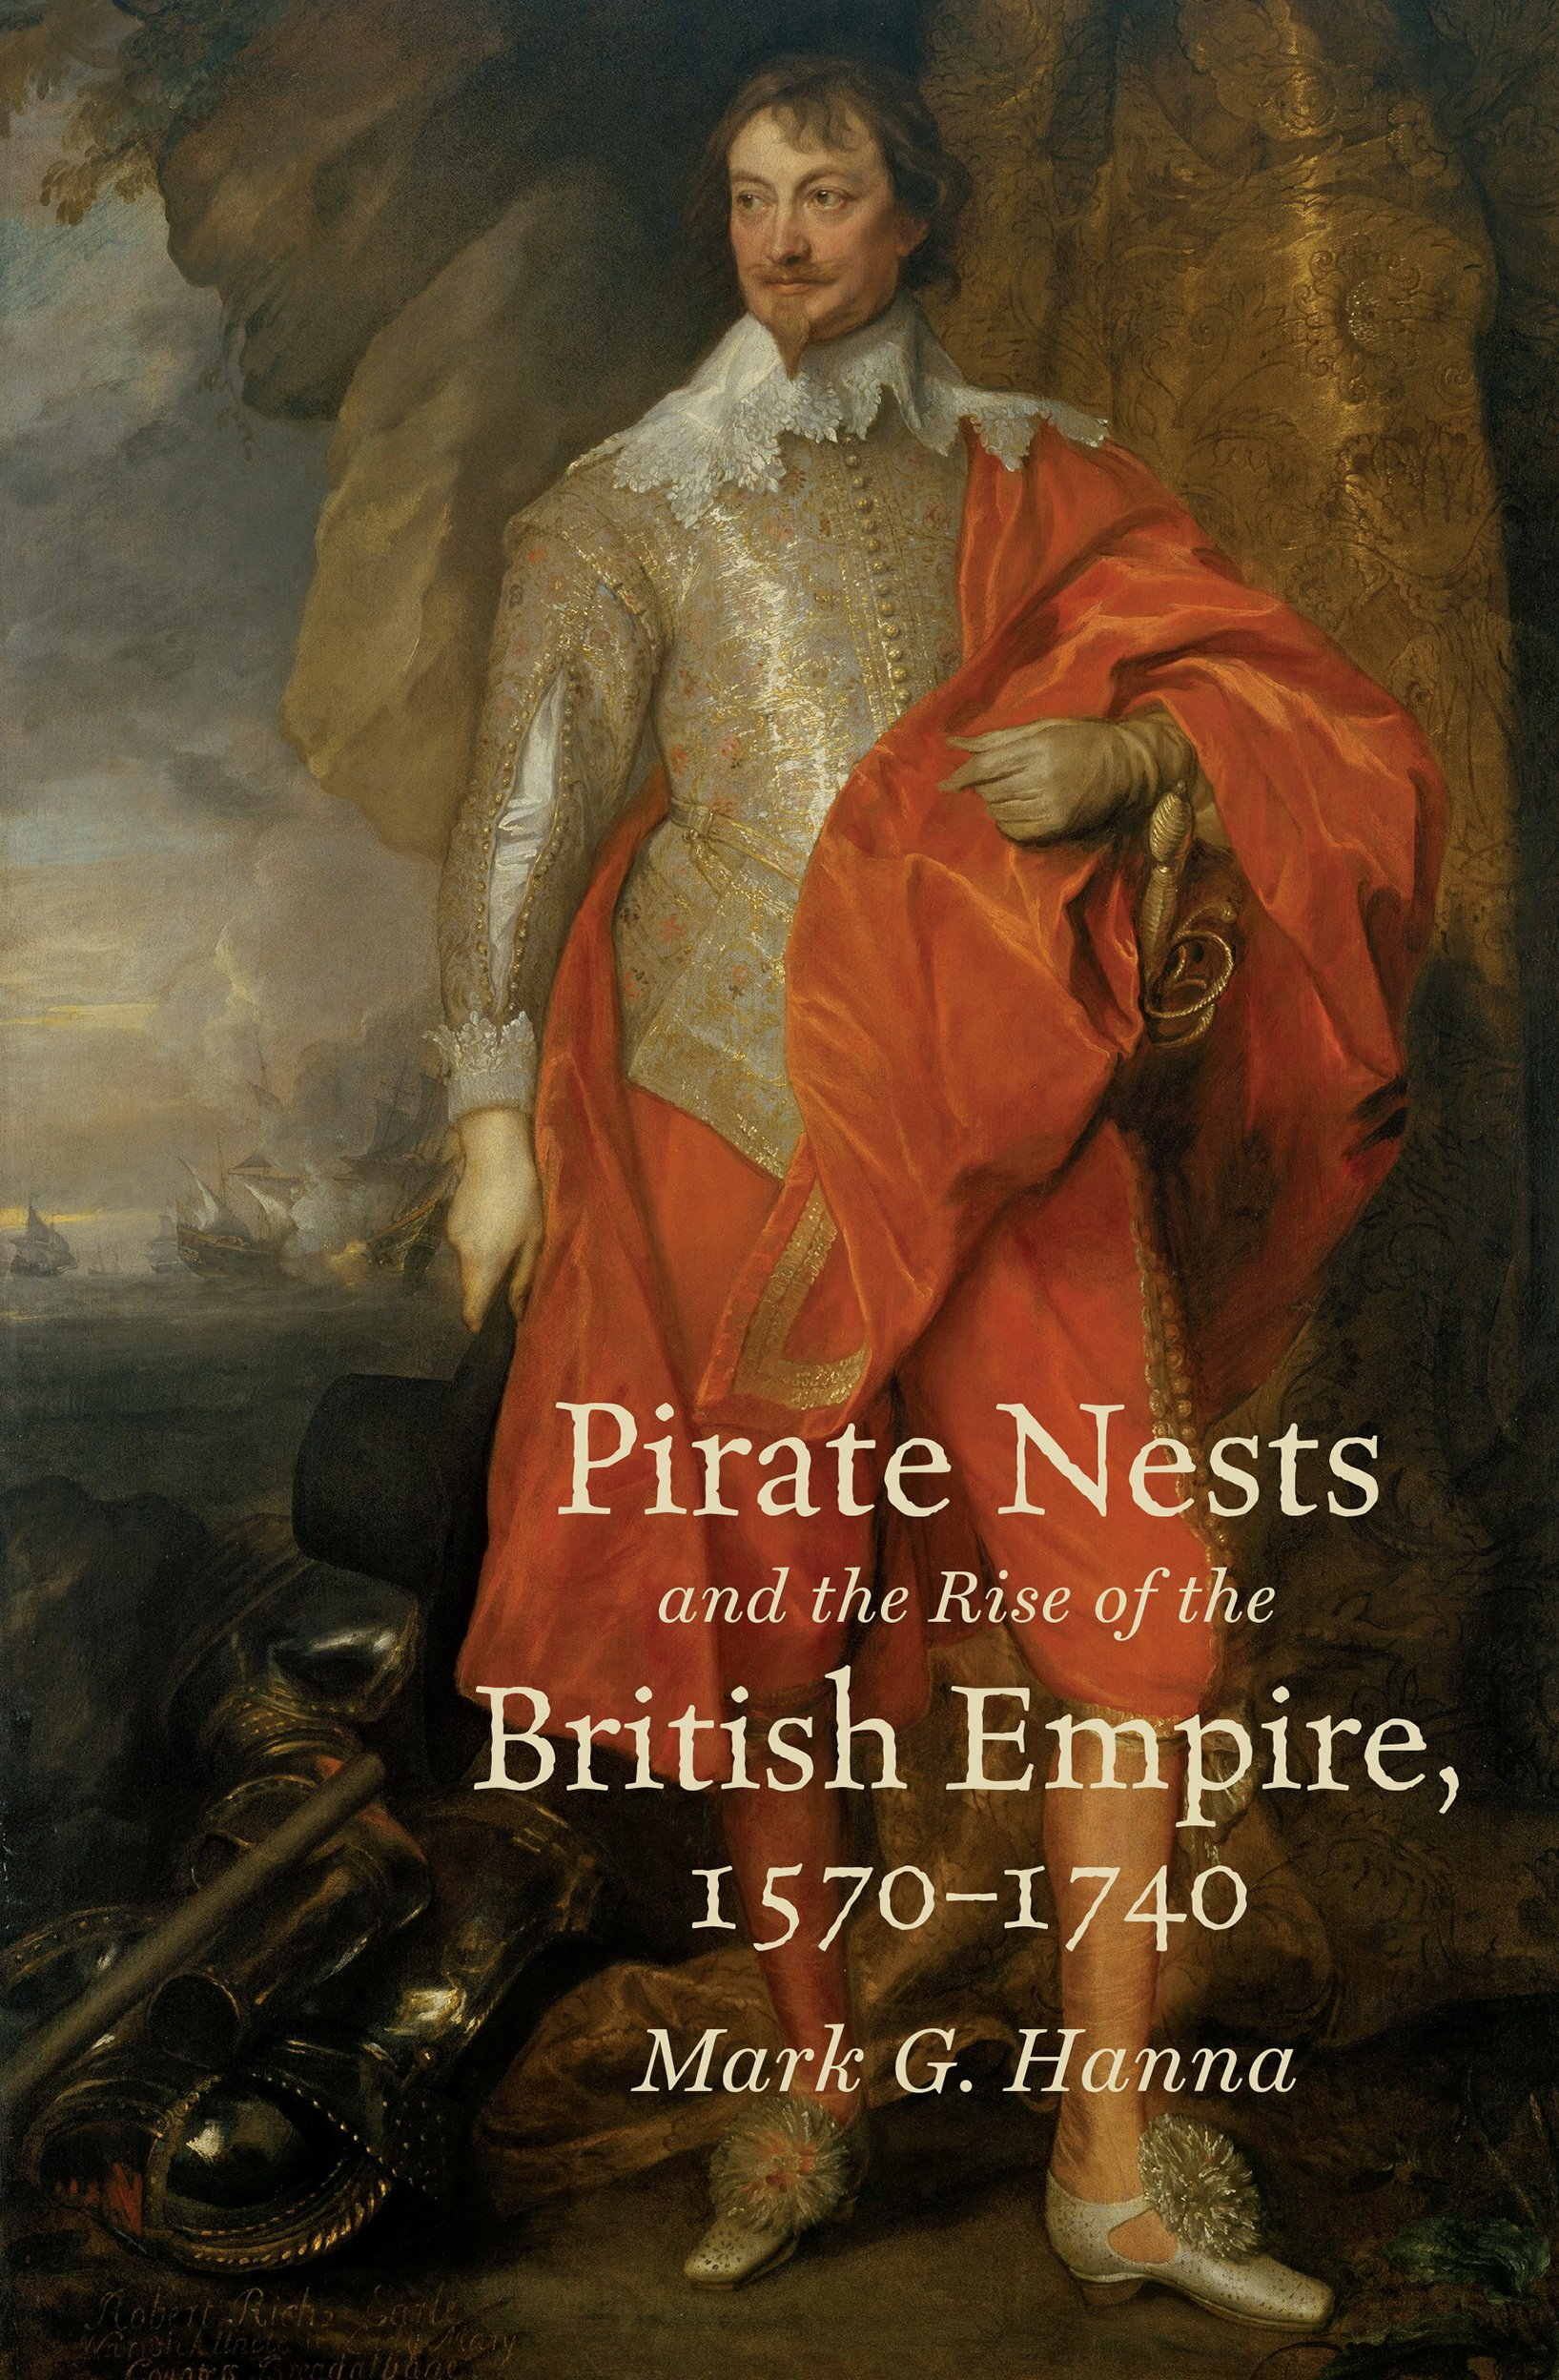 Read Online Pirate Nests and the Rise of the British Empire, 1570-1740 (Published by the Omohundro Institute of Early American History and Culture and the University of North Carolina Press) ebook